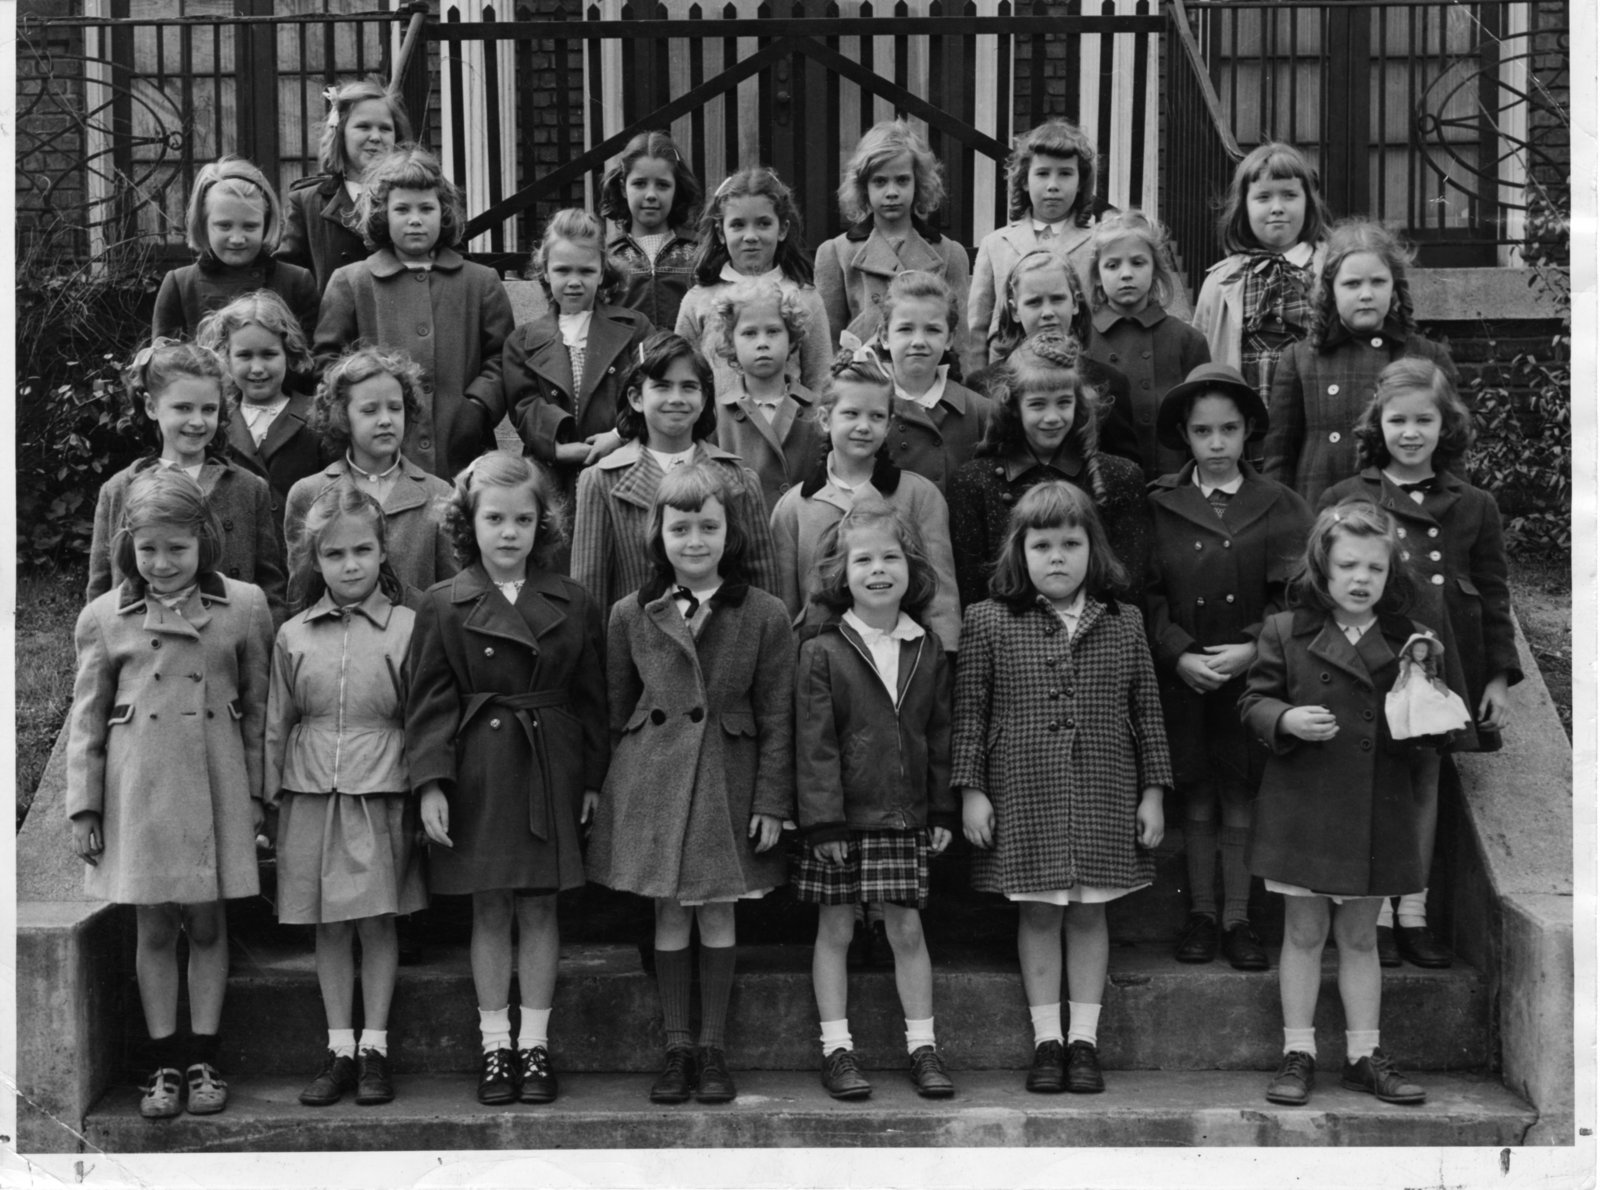 Class of 1959 pictured as Lower School students ca. 1949